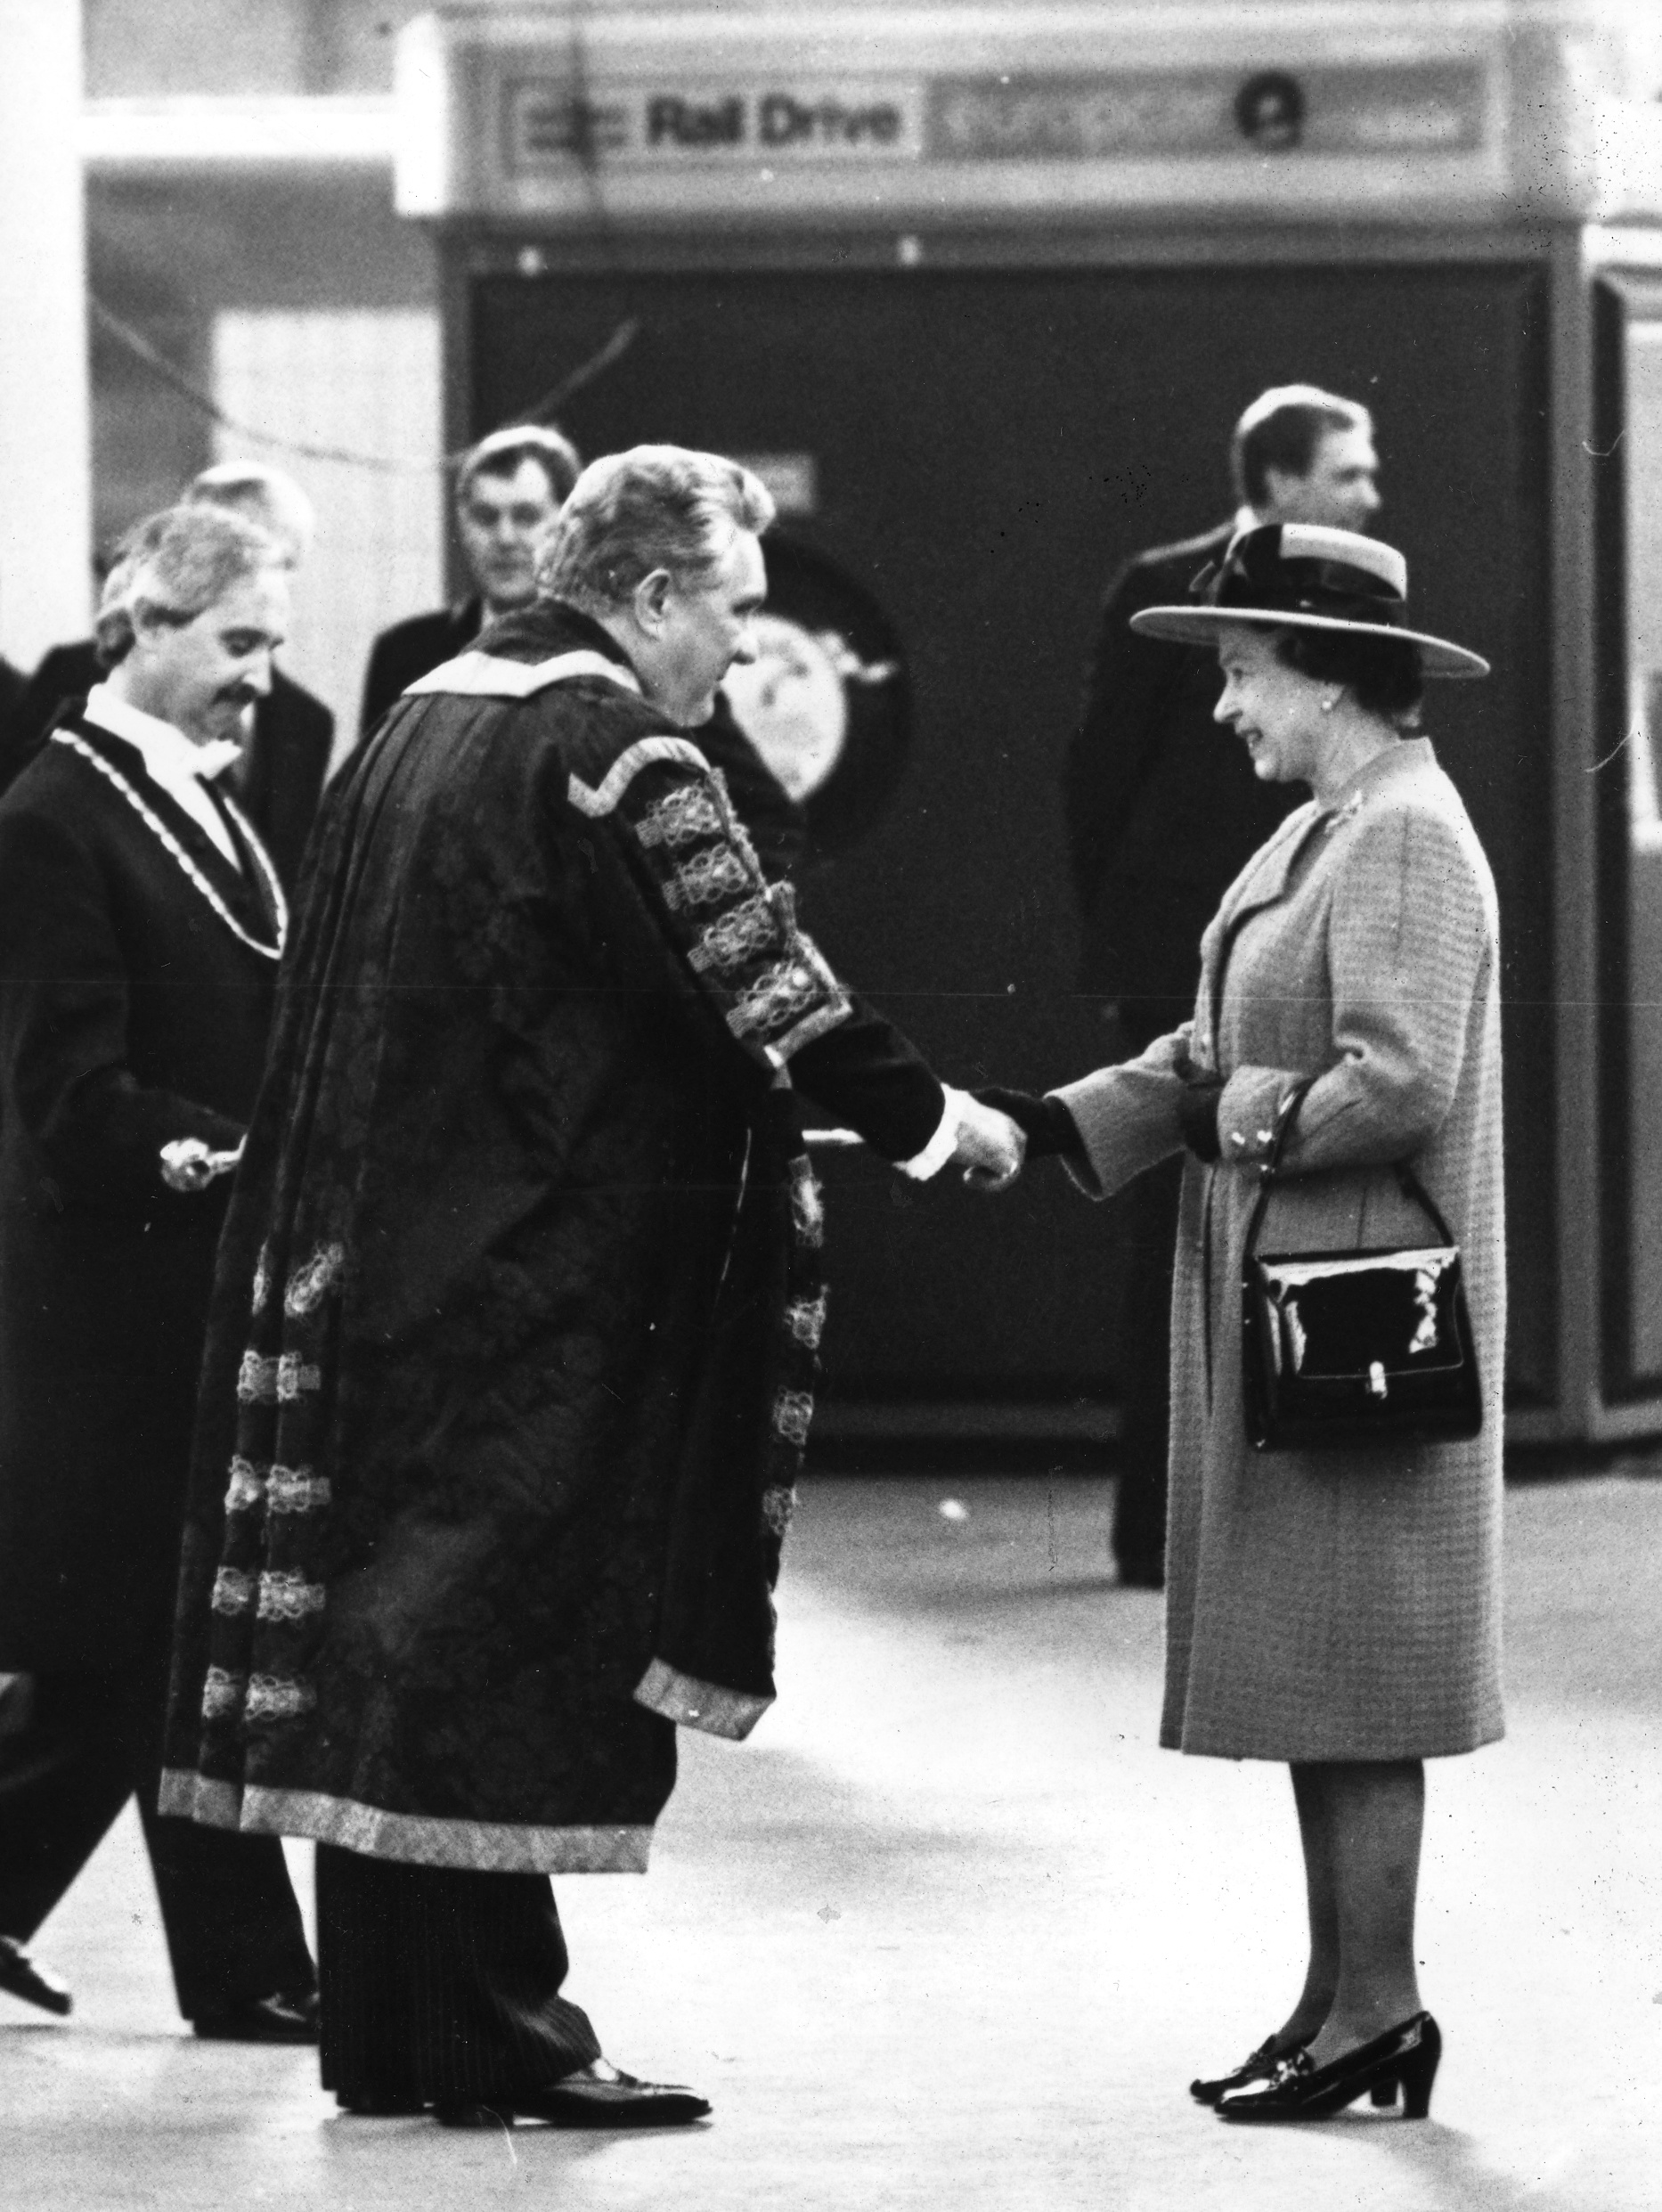 Lord Mayor Reg Pulleyn welcomes The Queen to York in 1988